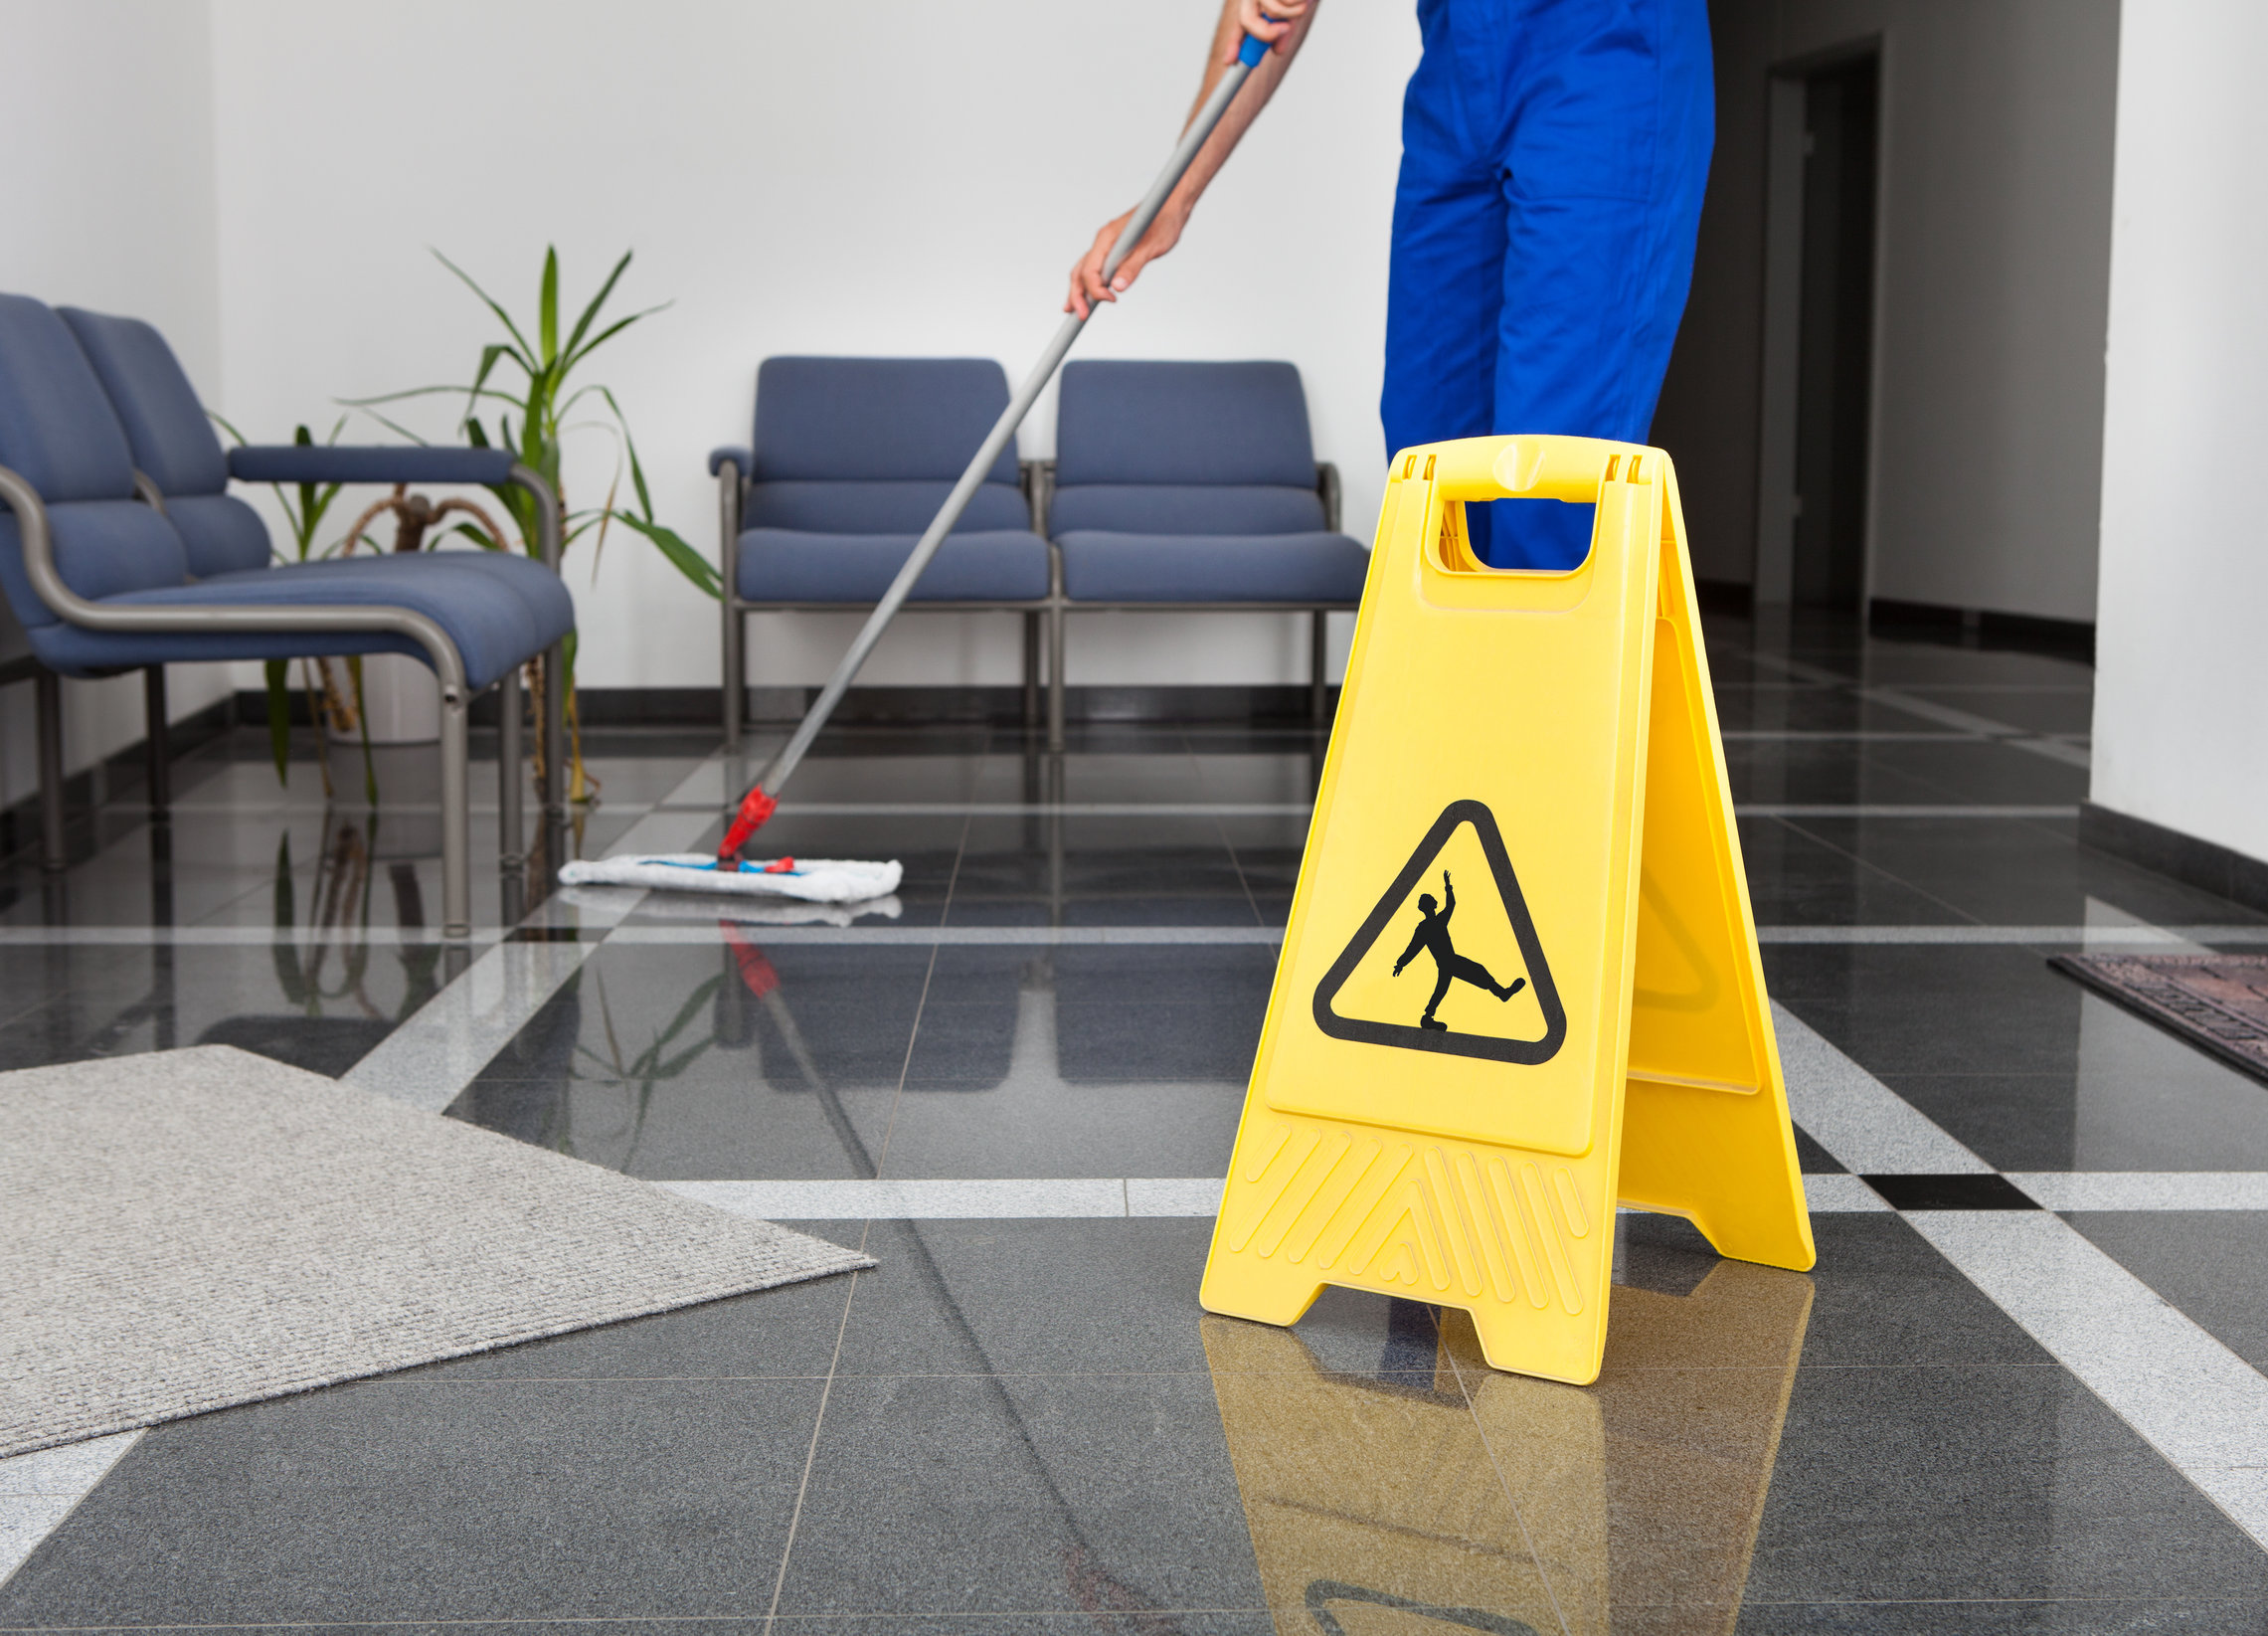 Ultimate Commercial Cleaning Service, Cleaning Company, Office Cleaning, Commercial Office Cleaning Professional cleaning service, office cleaning service, office maids, effingham office maids, effingham maids